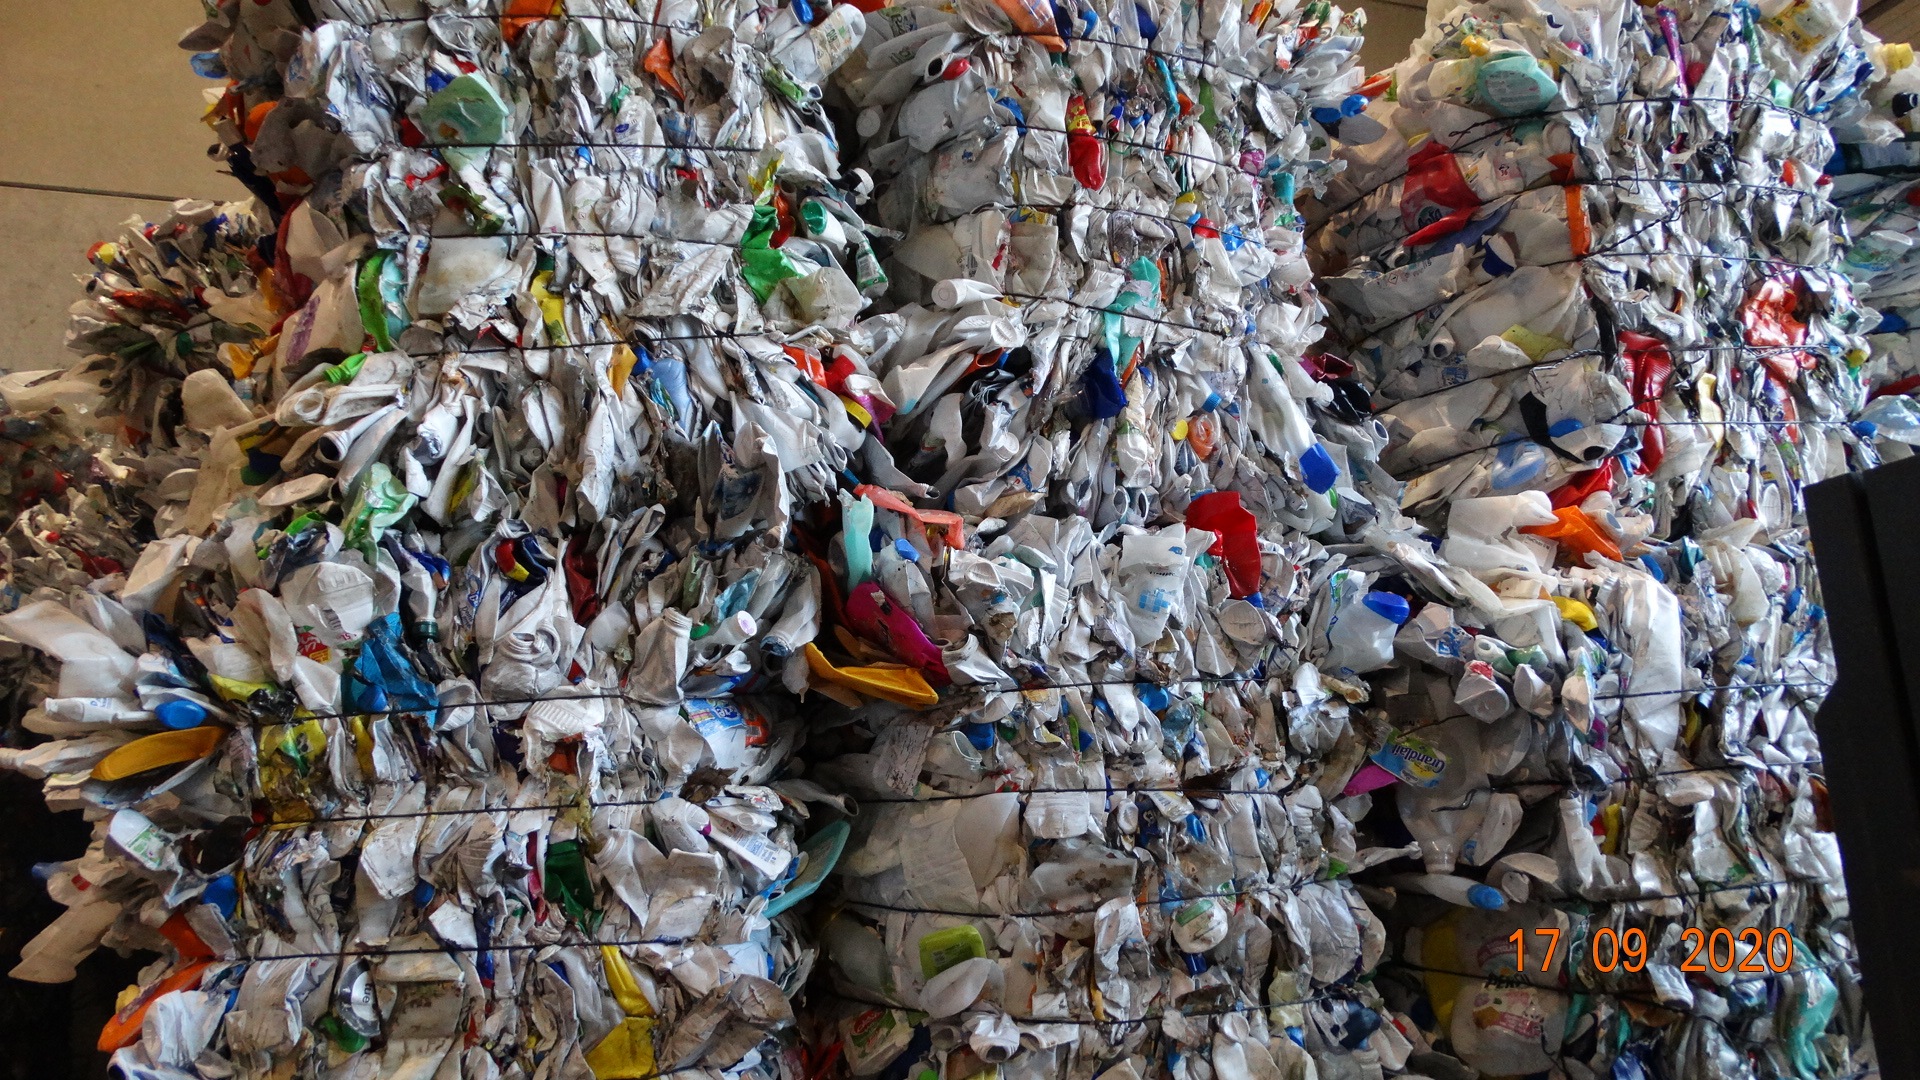 Various plastics awaiting recycling with the supercritical CO2 treatment process of the company Dense Fluid Degreasing